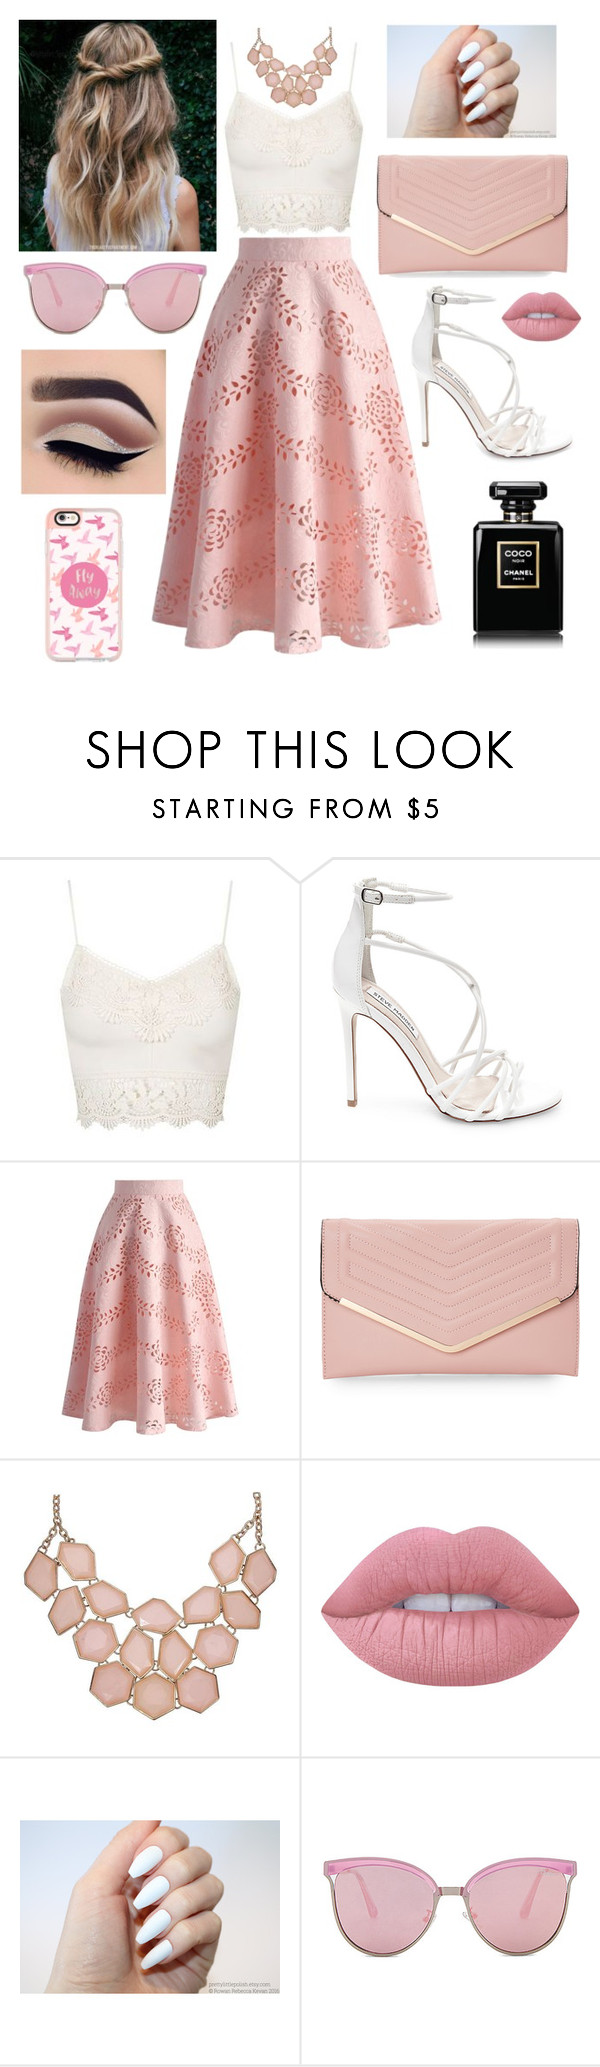 """""""Untitled #202"""" by hallloweenqueen ❤ liked on Polyvore featuring Topshop, Steve Madden, Chicwish, Sasha, Lime Crime, Quay and Casetify"""